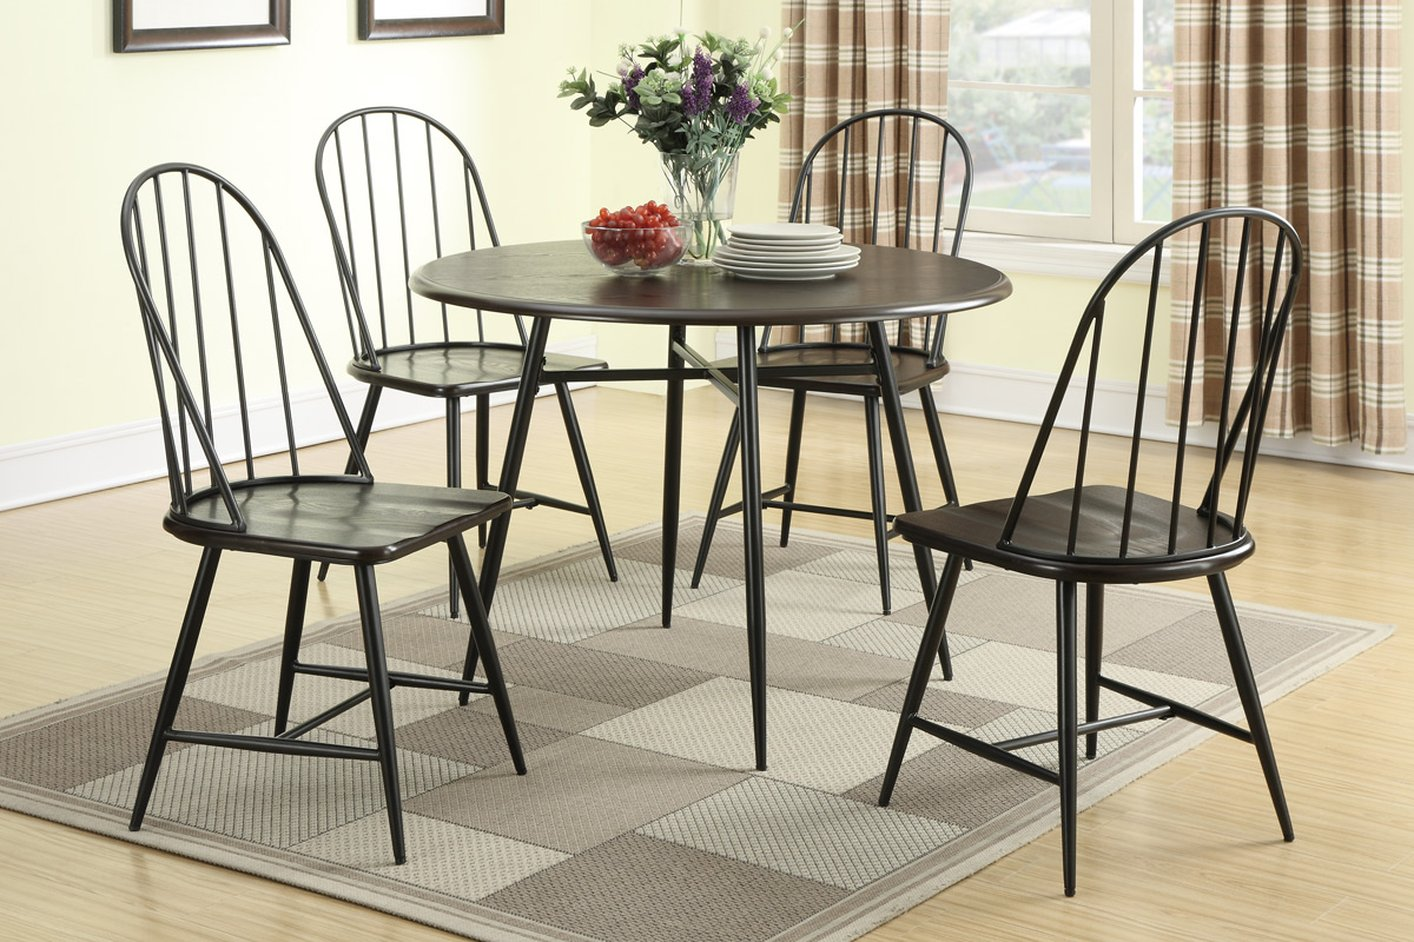 black metal dining chair black metal dining chair - Metal Dining Room Chairs